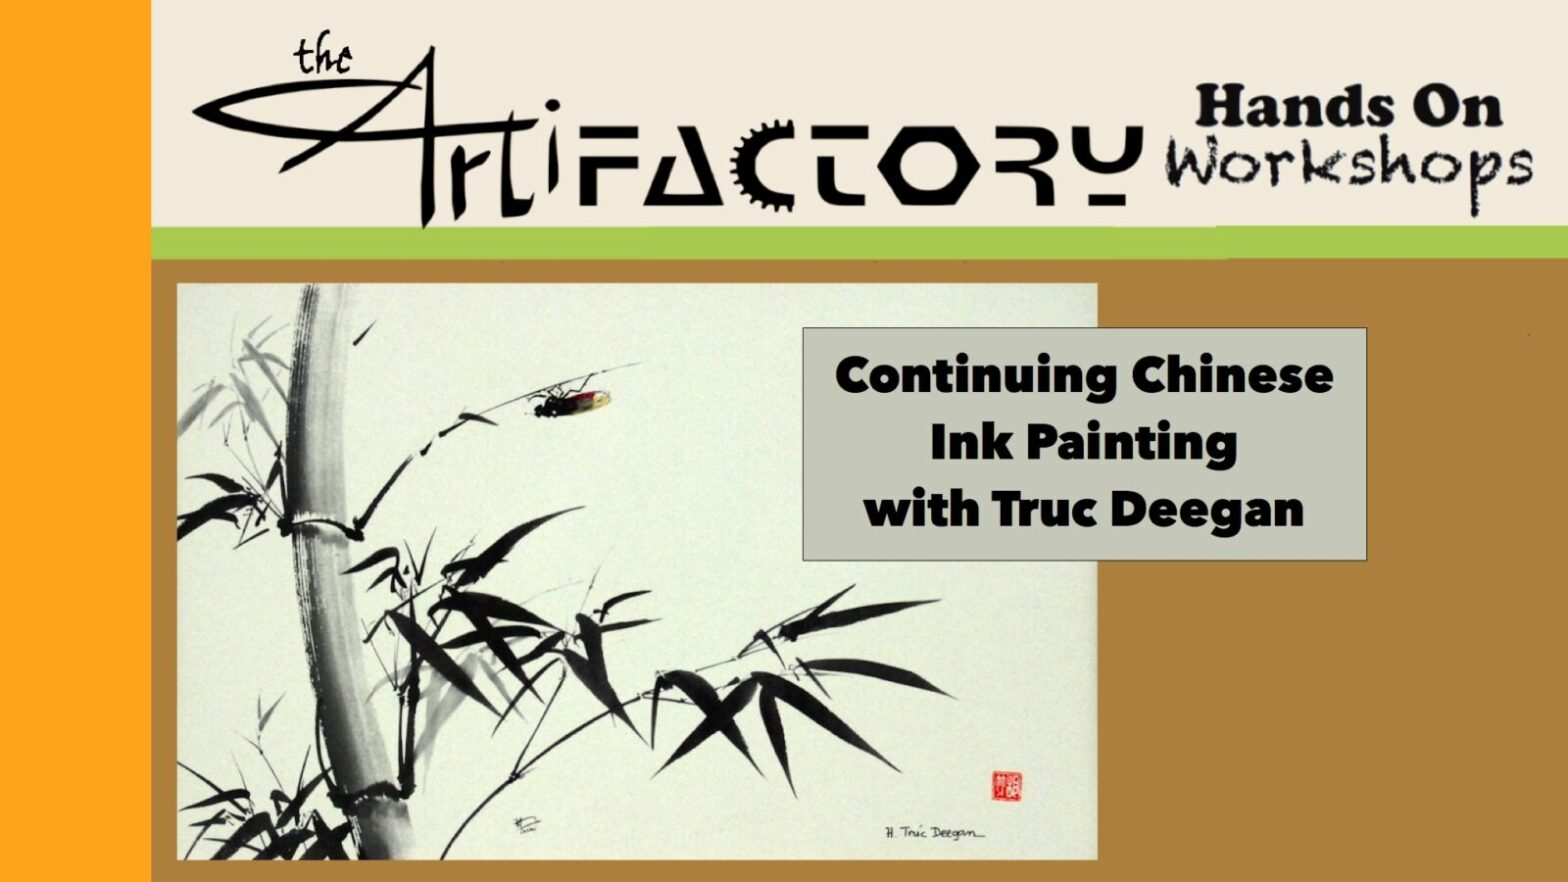 Continuing Chinese Ink Painting